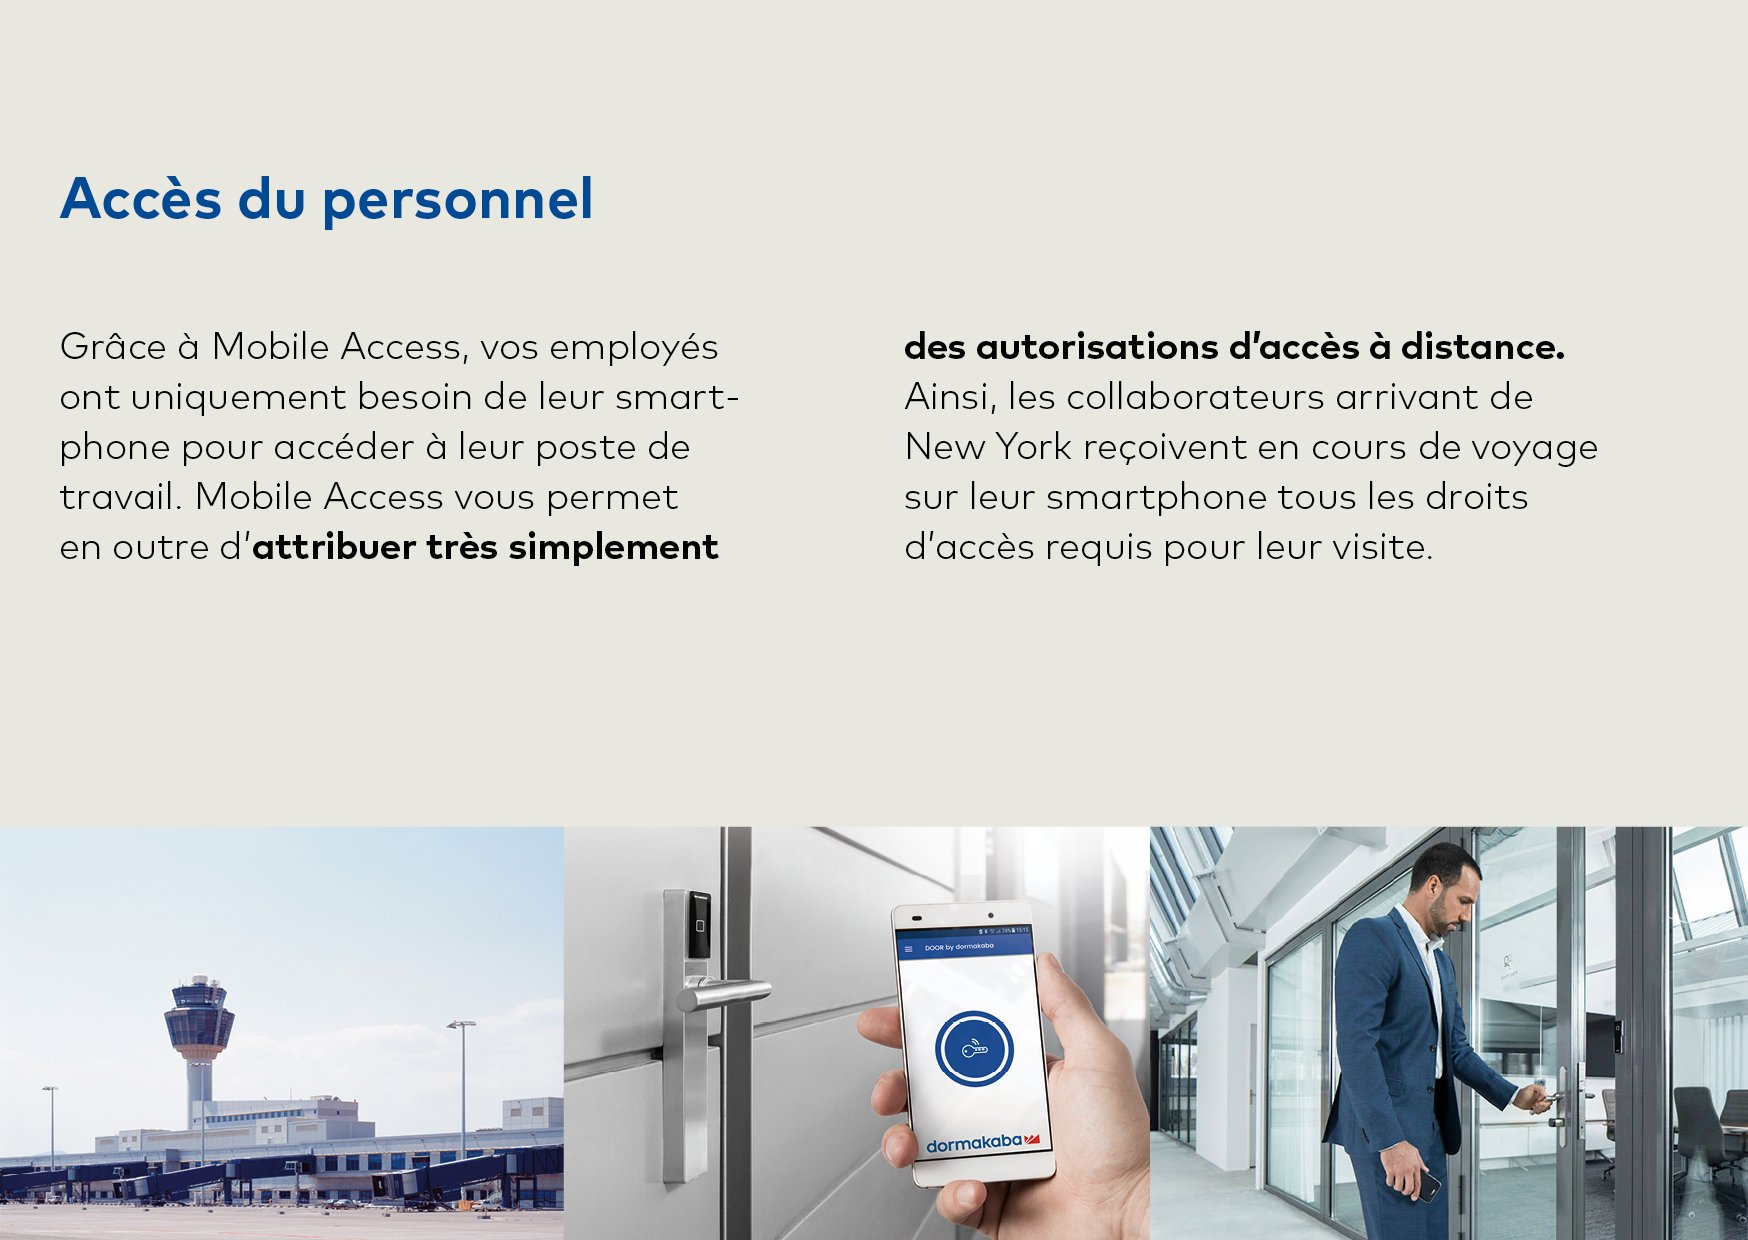 Acces_du_personnel_Mobile_Access